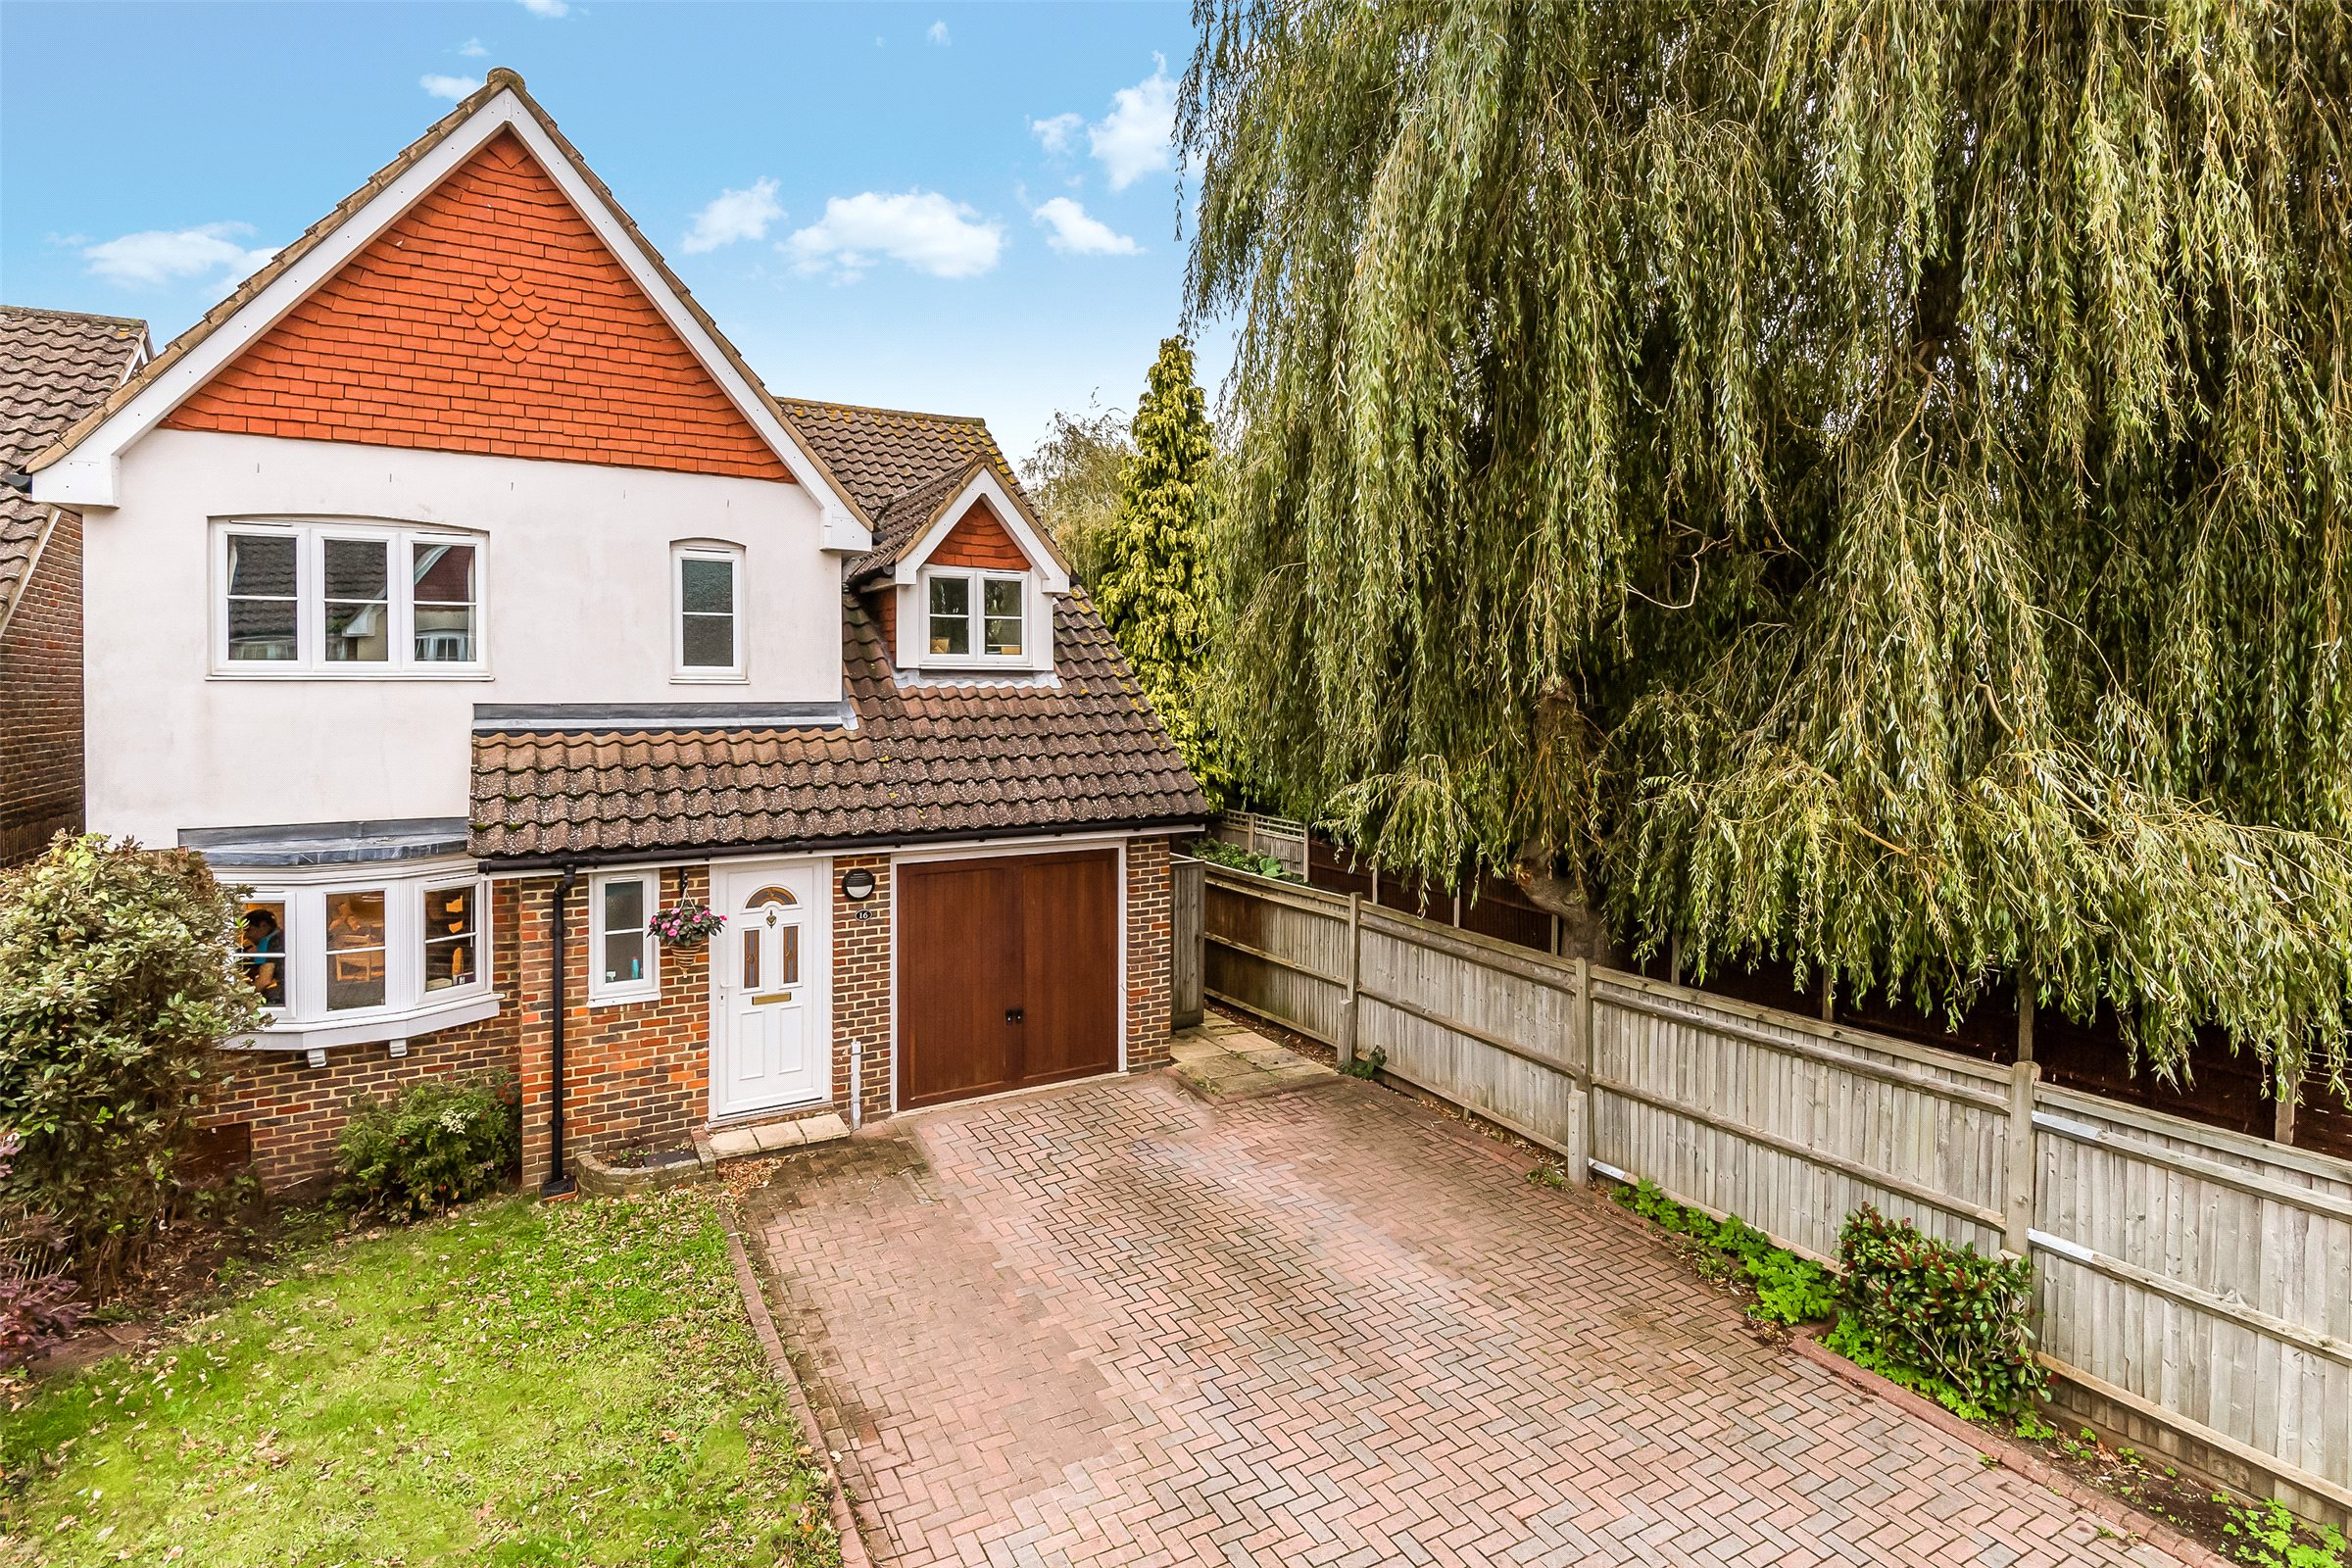 4 Bedrooms Detached House for sale in Forge Place, Horley, Surrey, RH6